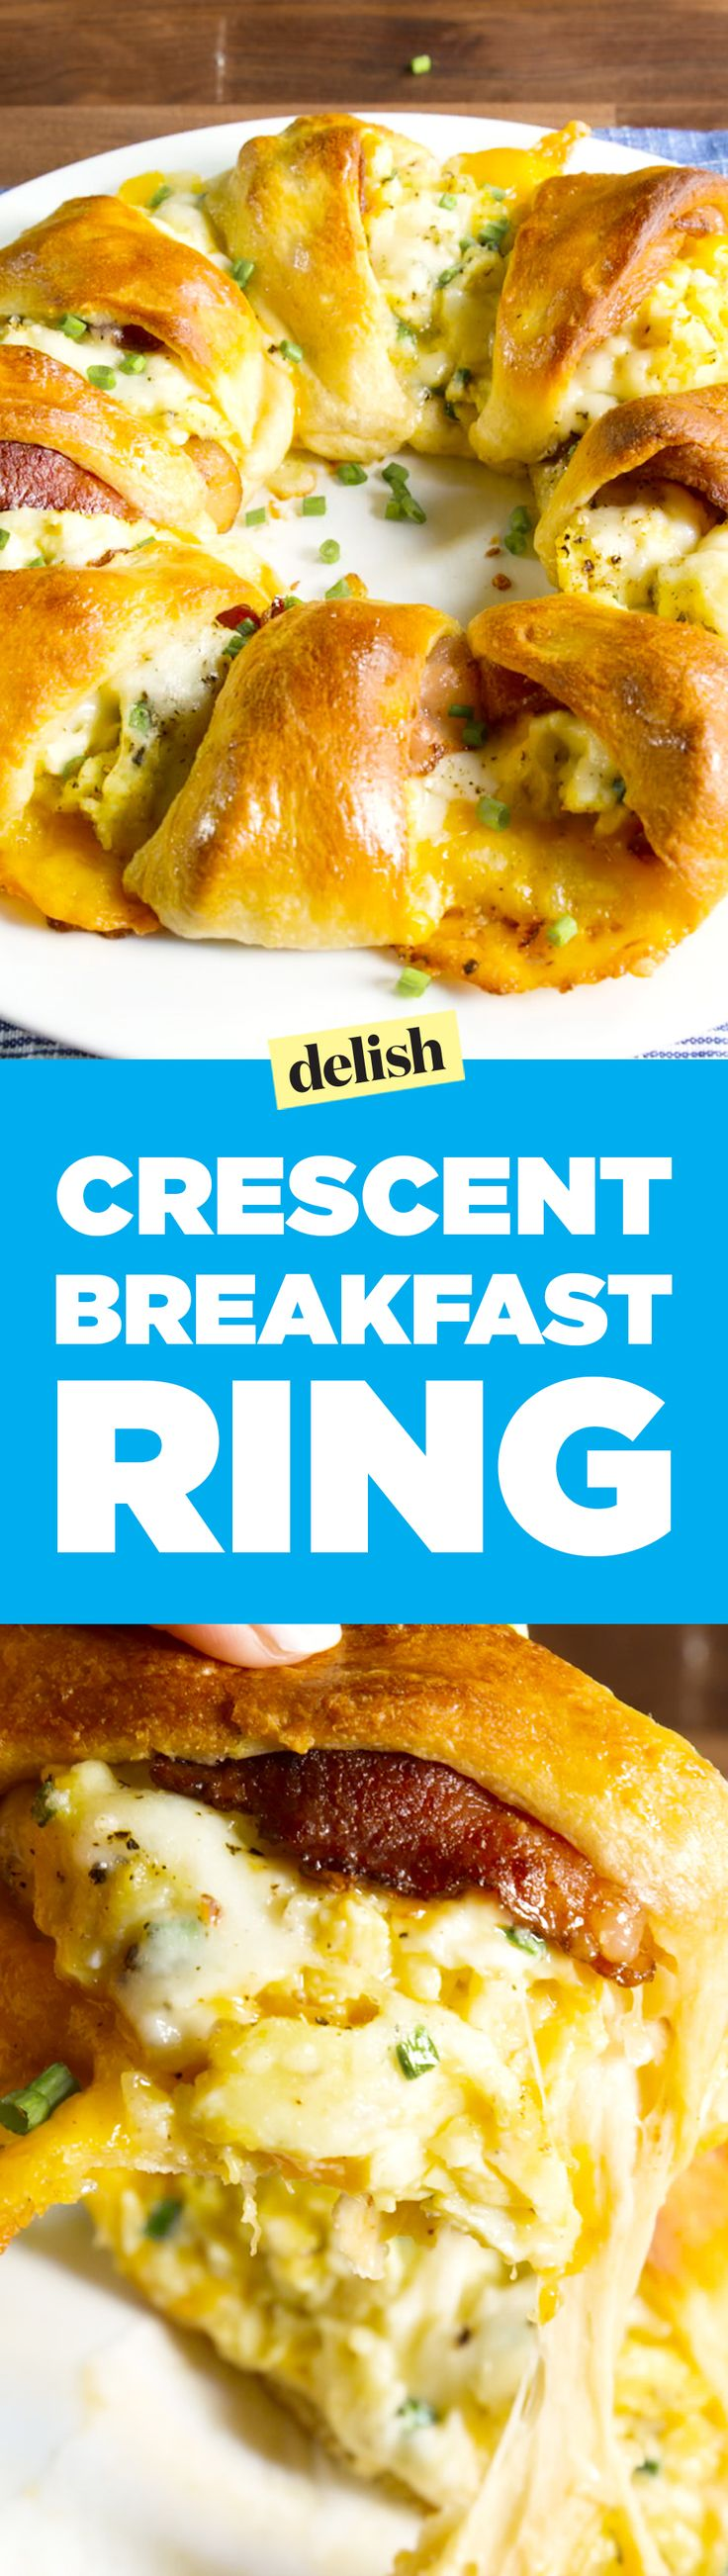 Our crescent breakfast ring is like making 10 breakfast sandwiches, all at once. Get the recipe on Delish.com.